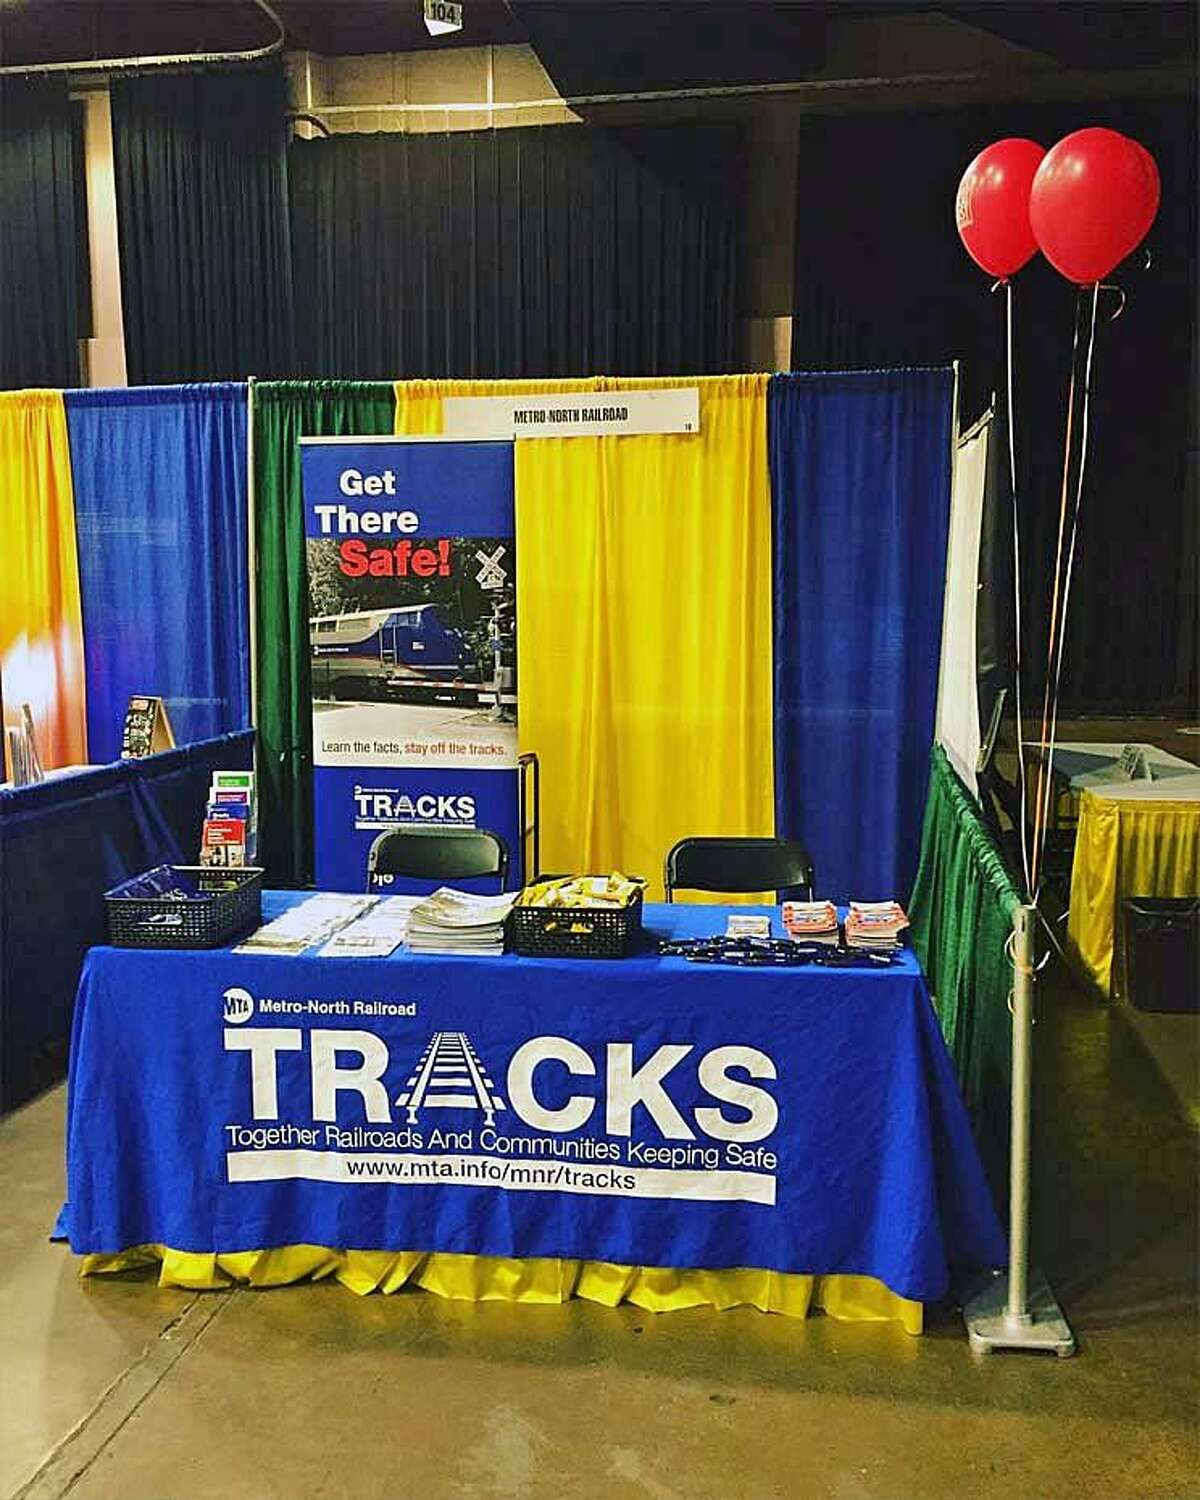 The contest was overseen by TRACKS, the railroad's free safety community outreach and education program. TRACKS, run by the Metro-North's Office of System Safety, is an acronym for Together Railroads and Communities Keeping Safe.